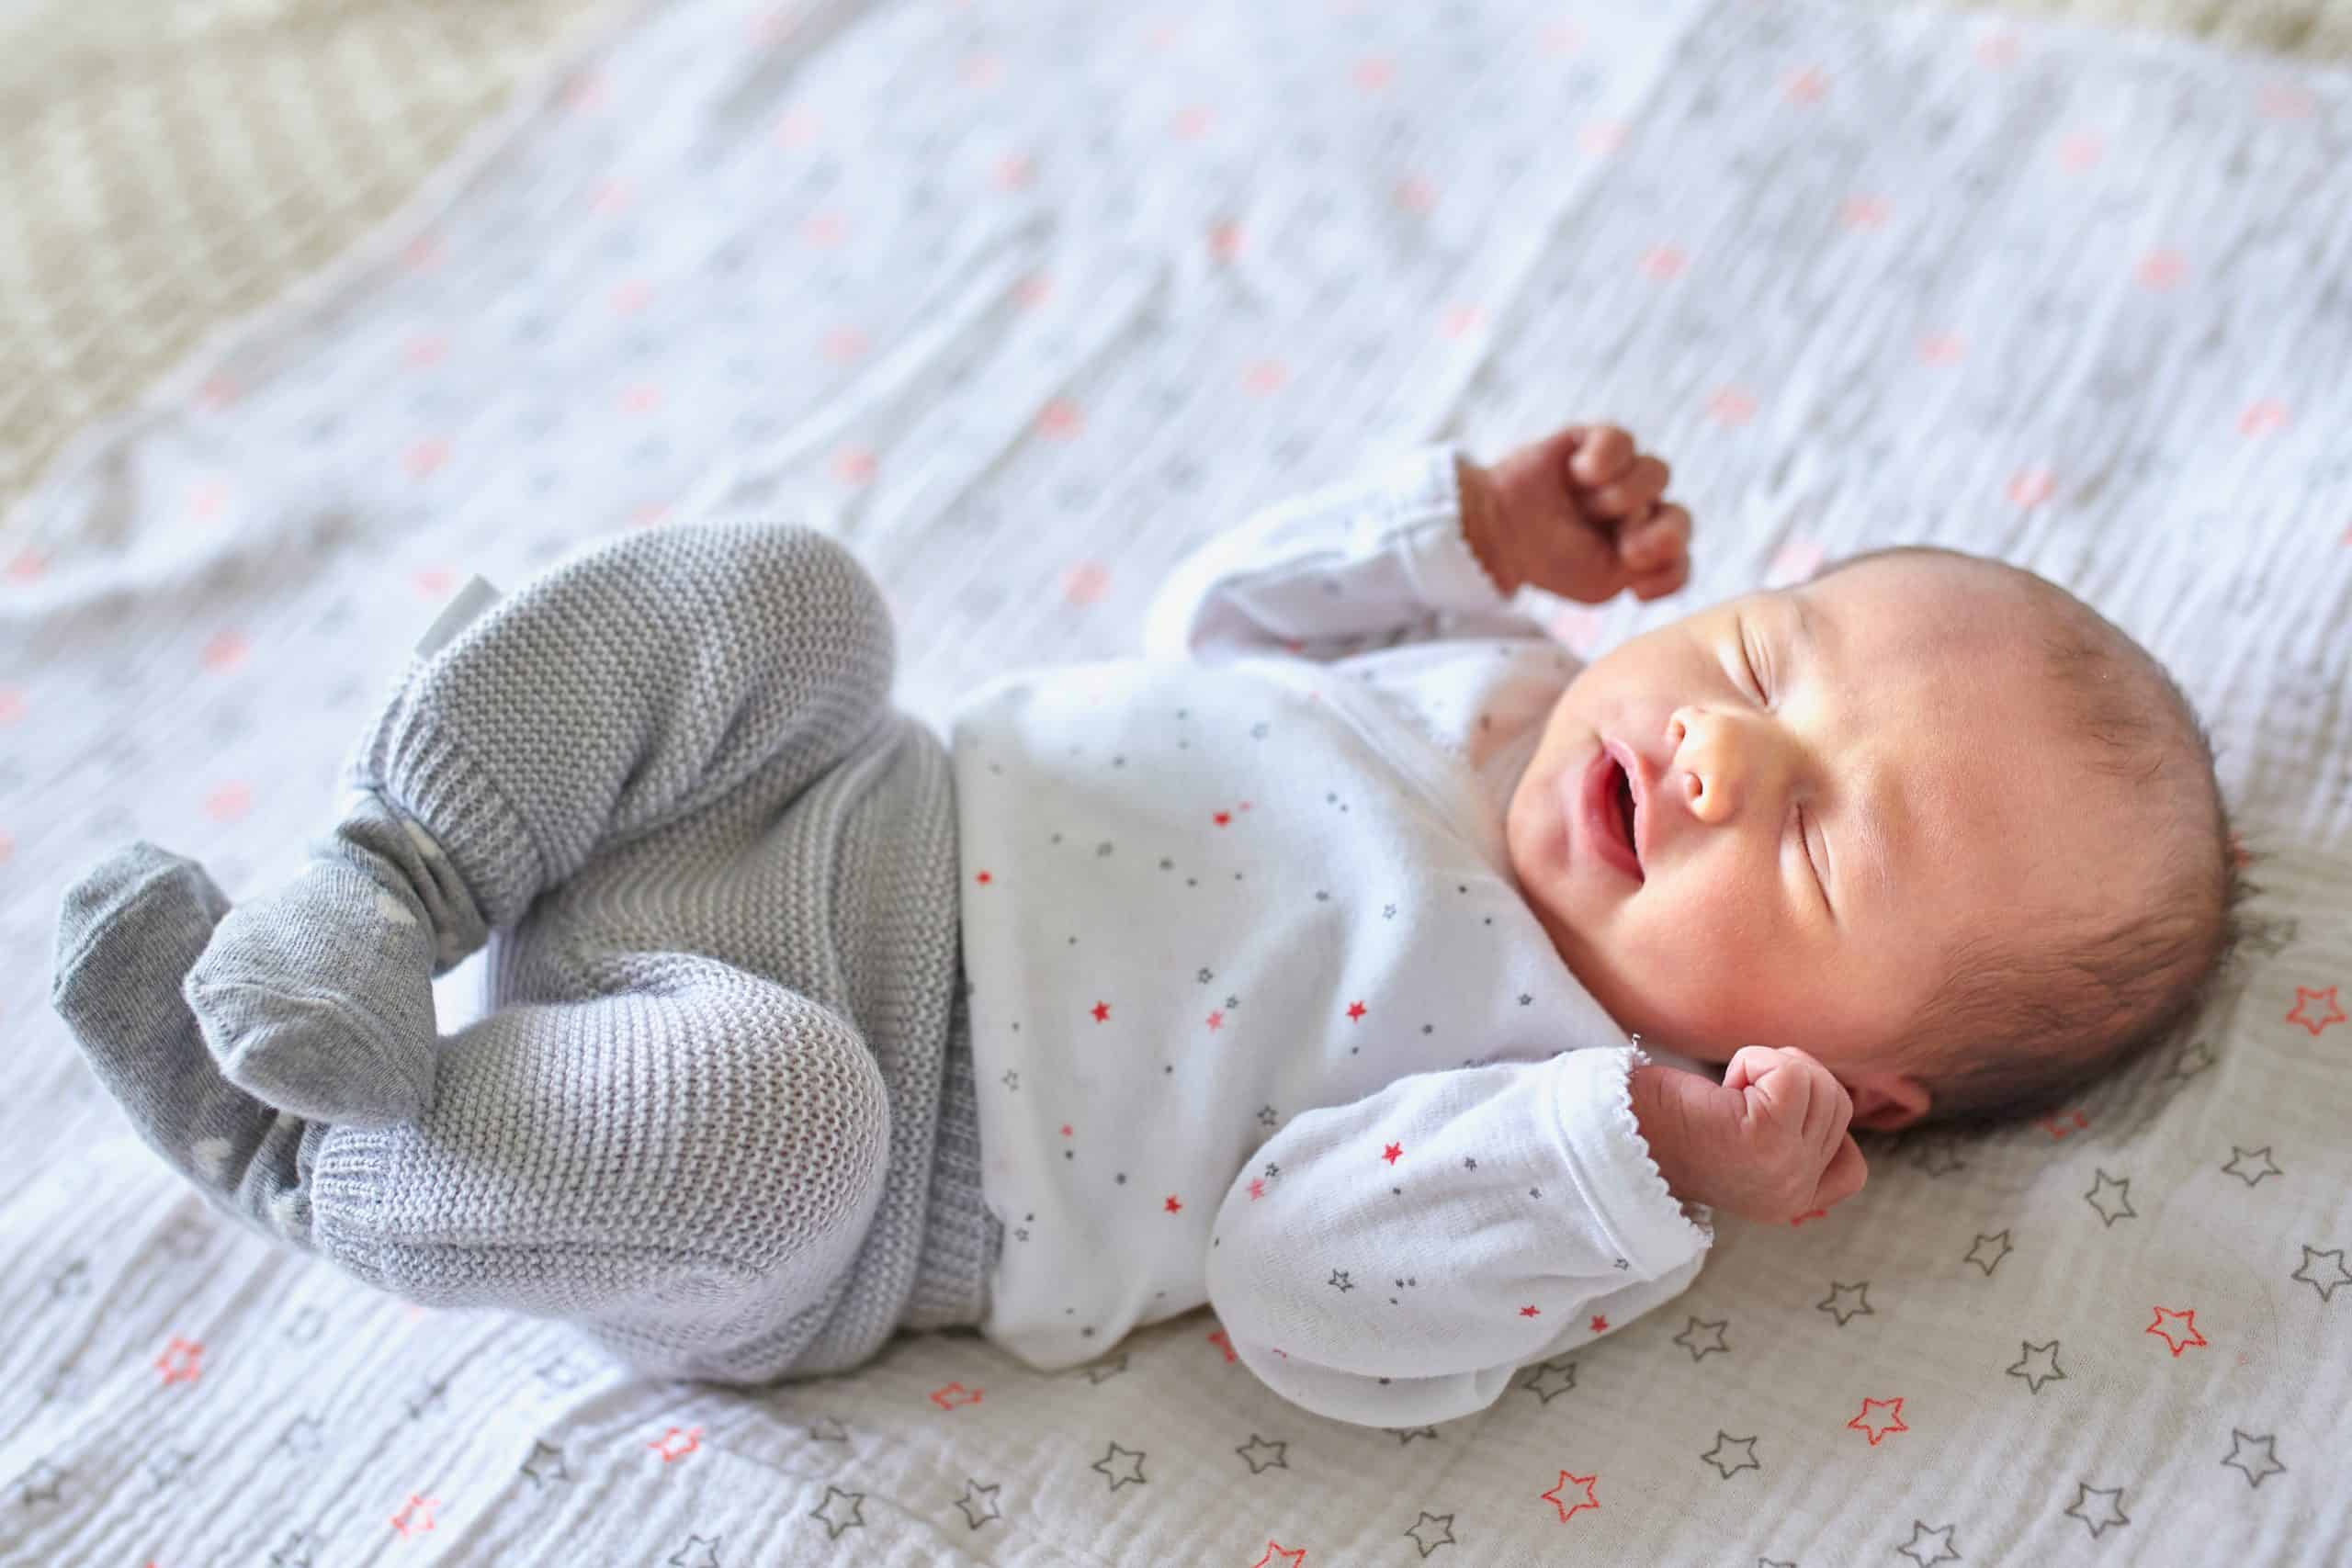 Newborn baby girl at home, baby nap time